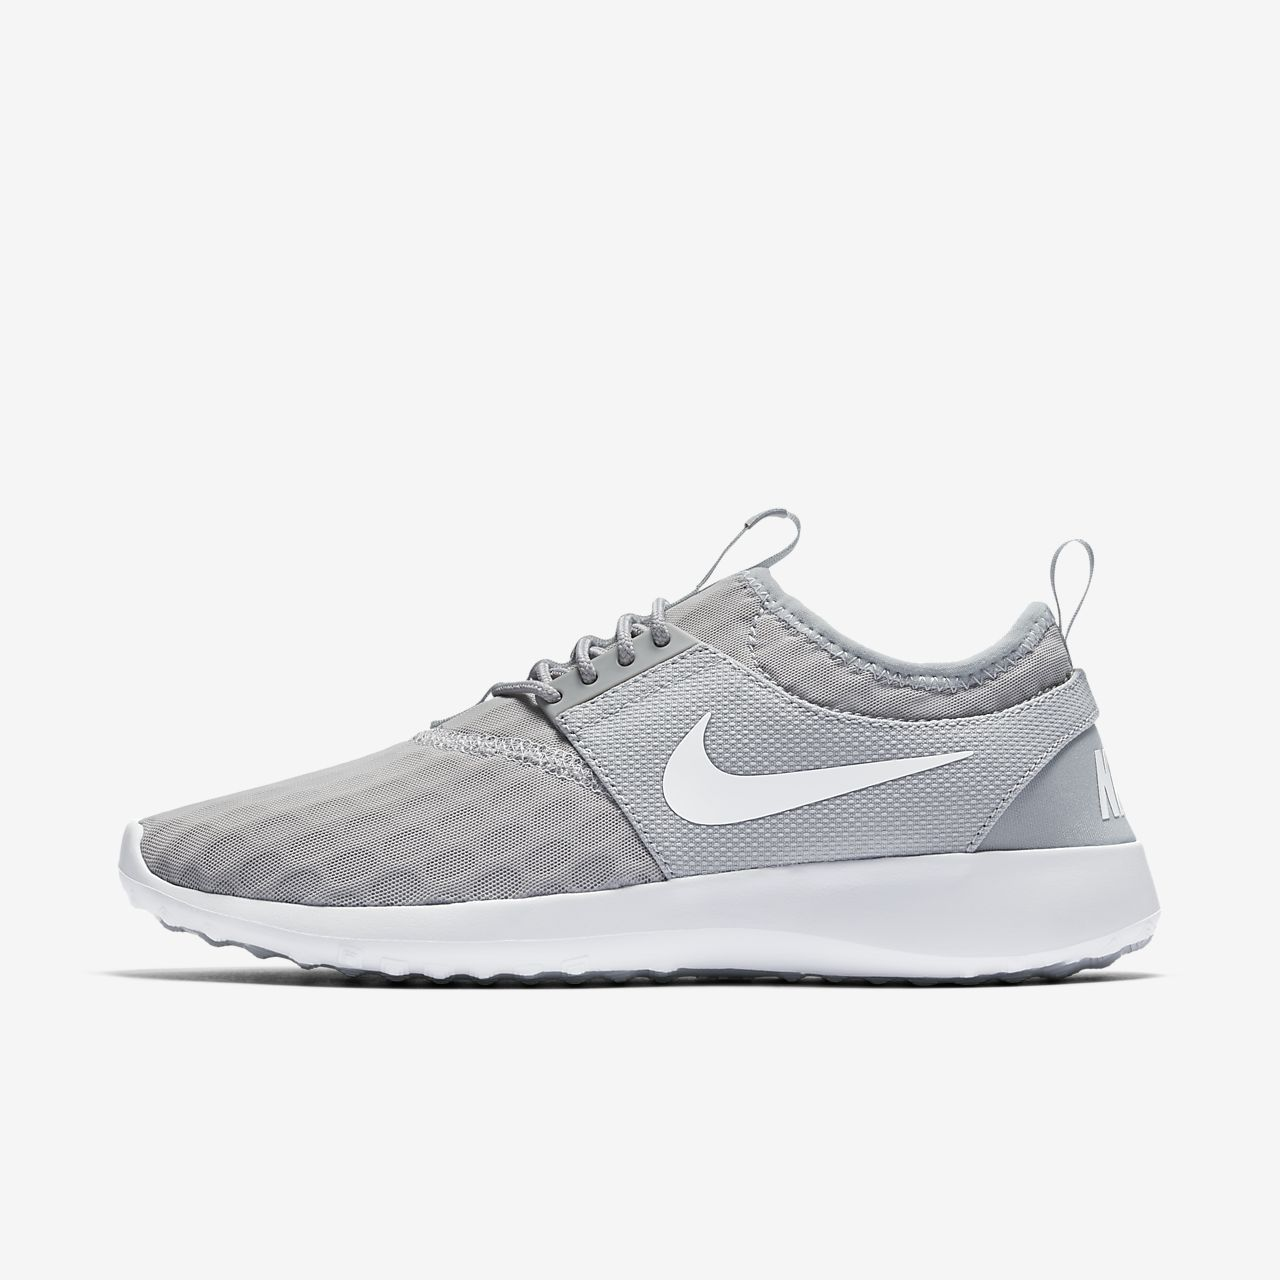 nike shoes gray and black spots mesh ribbon 837798